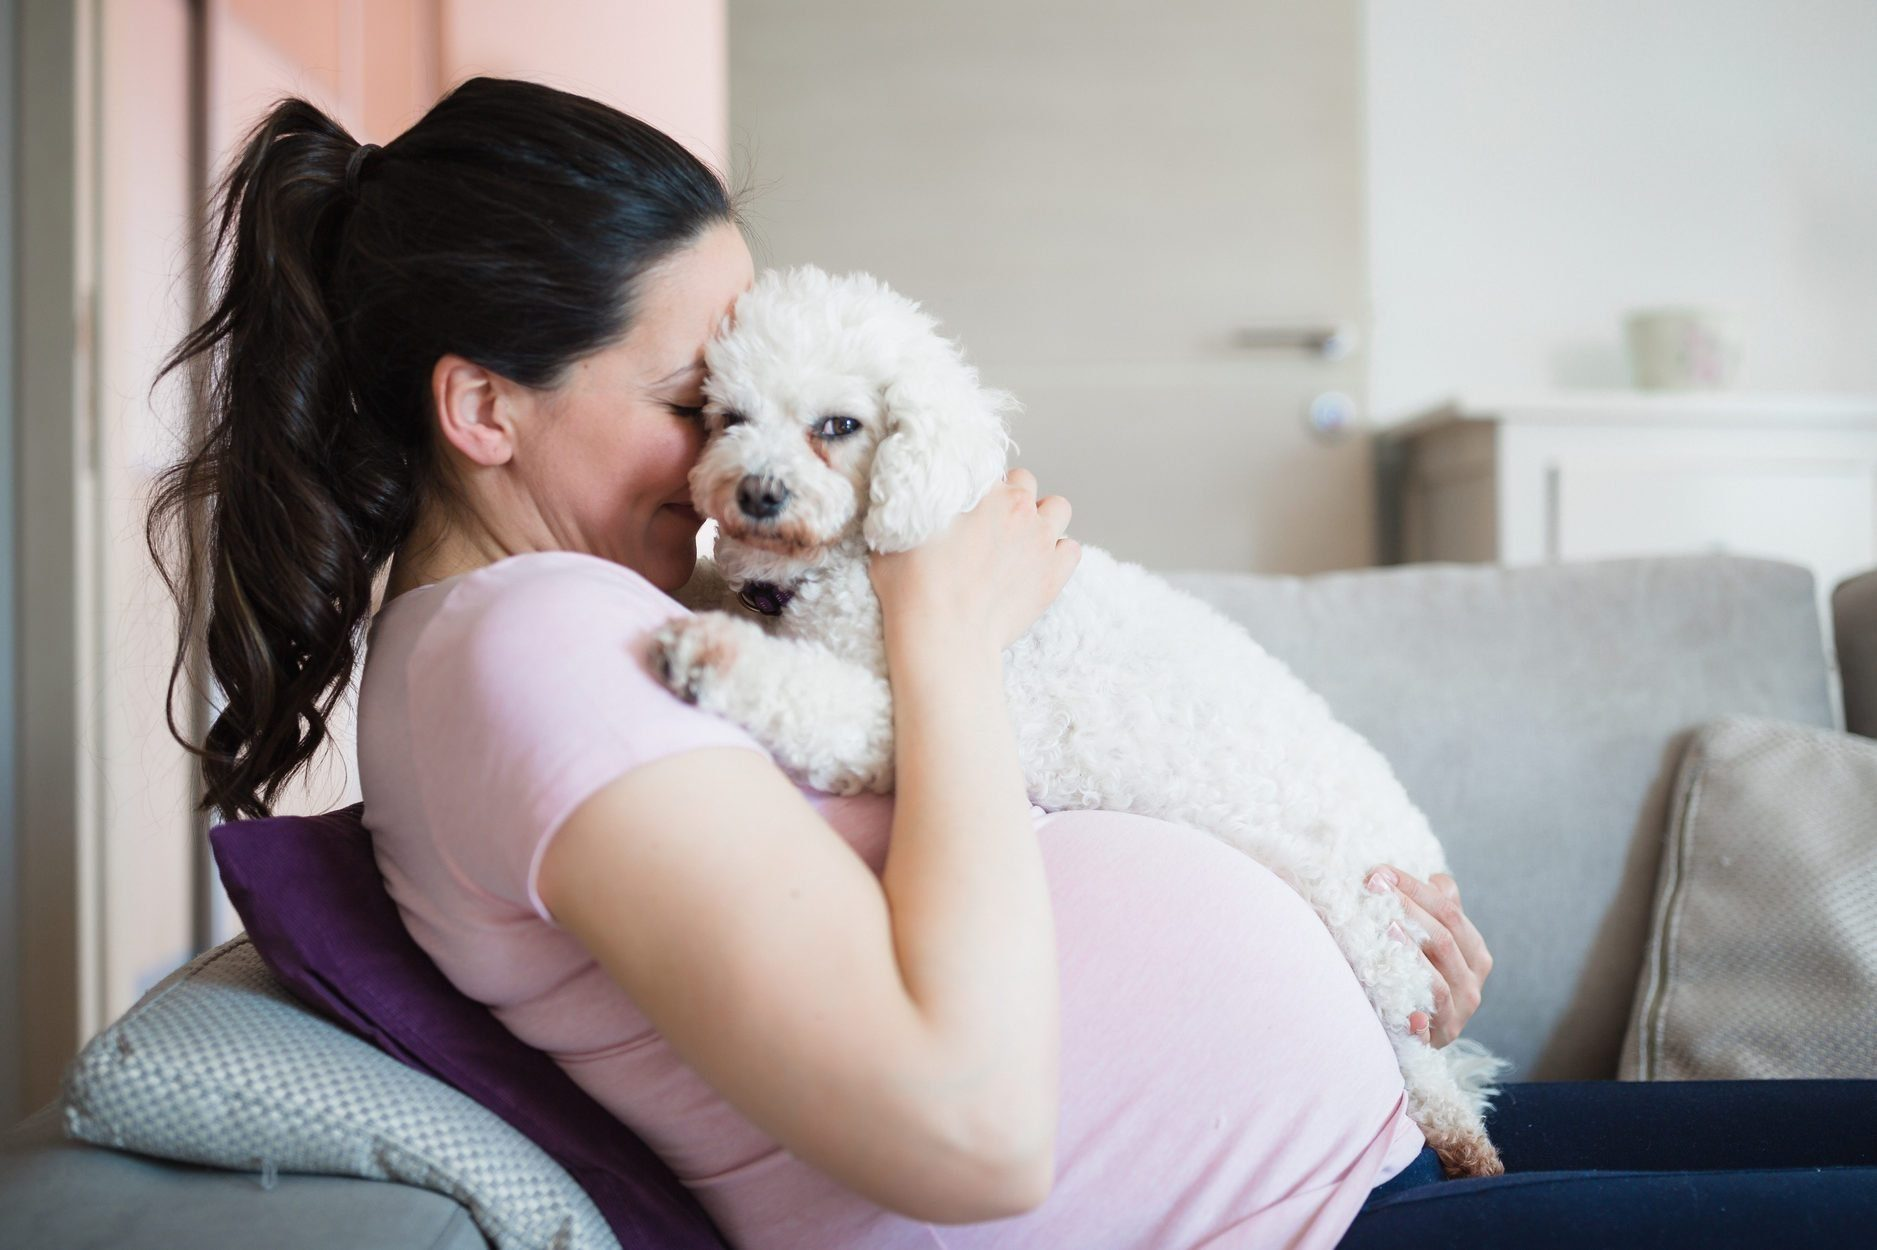 Most affectionate dog breeds - Pregnant woman having fun with her dog